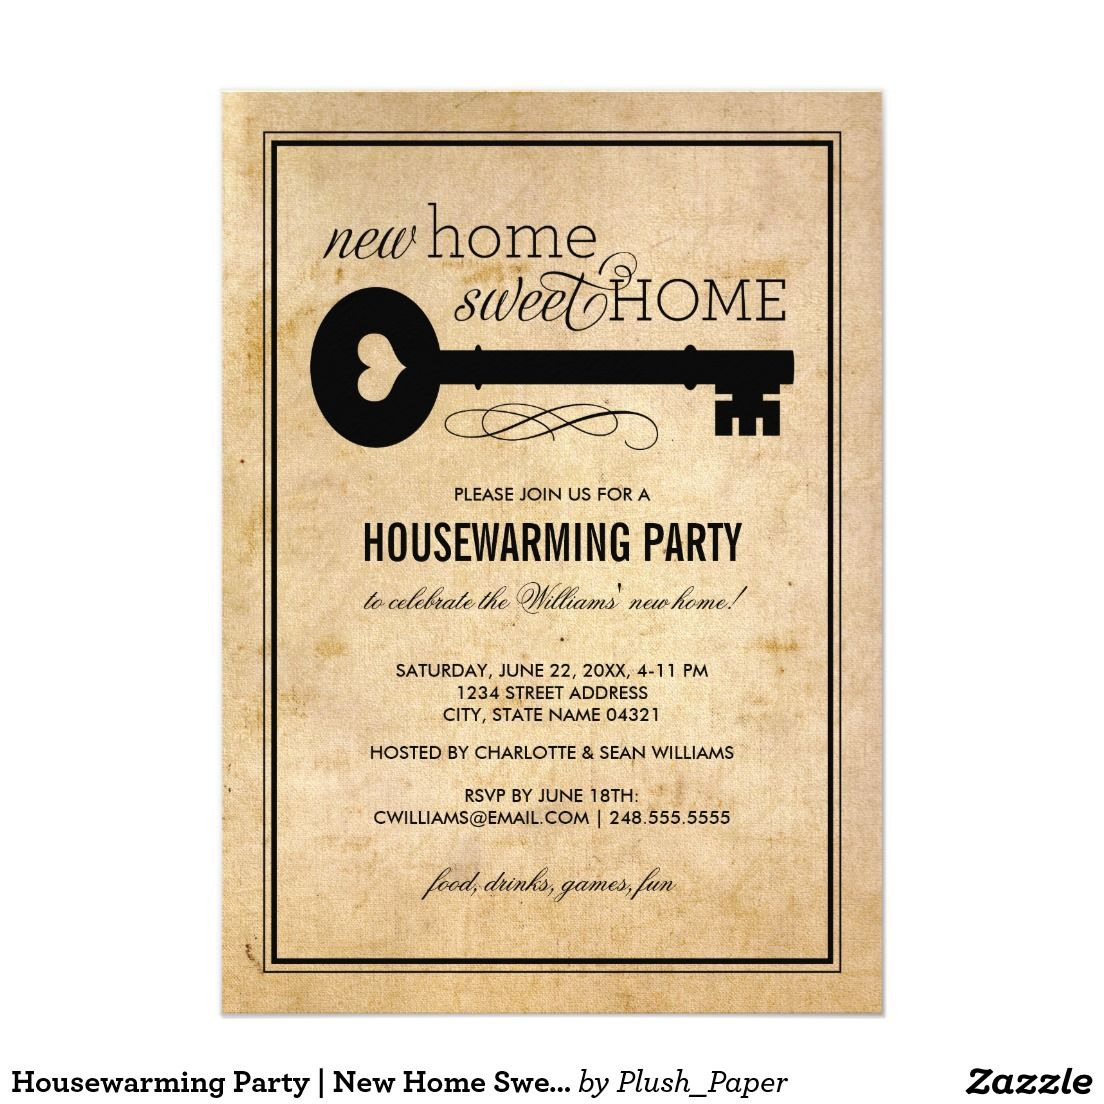 Housewarming Party | New Home Sweet Home Card | Housewarming party